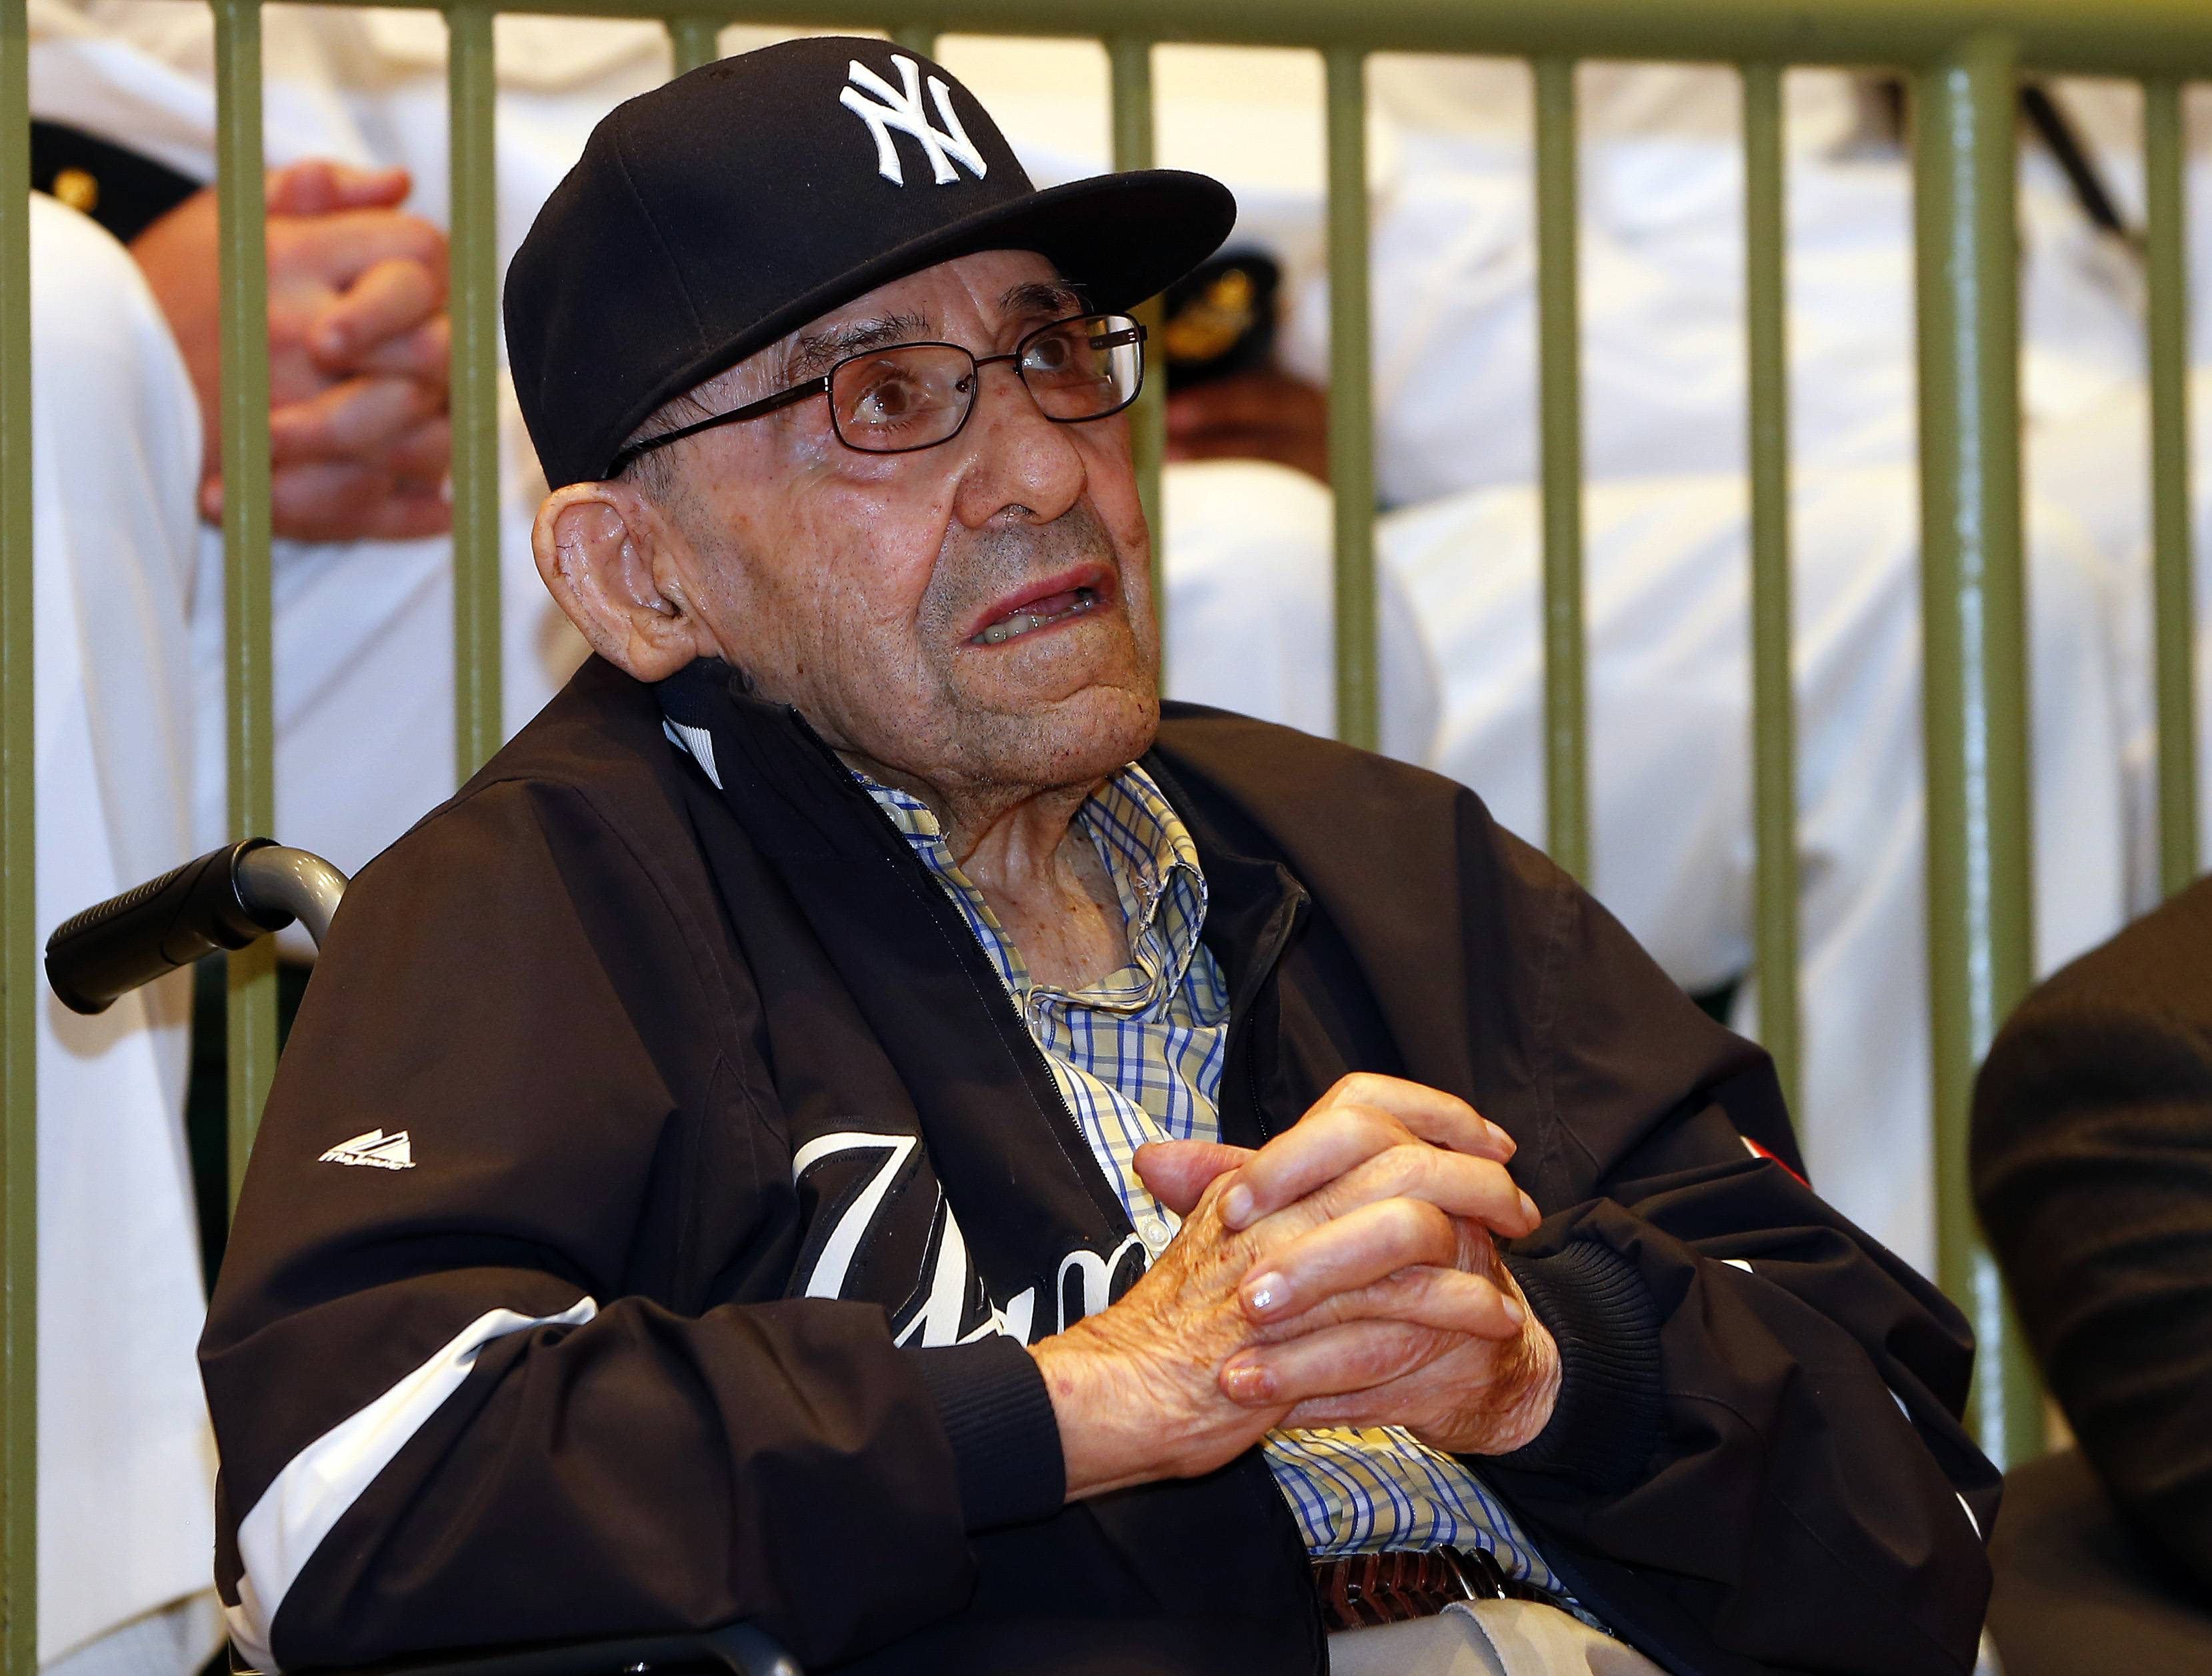 Baseball Hall of Famer Yogi Berra looks on as he is honored by the U.S. Navy for his service 70 years ago during the D-Day Invasion at a ceremony at the Yogi Berra Museum in Montclair, N.J., Friday, June 6, 2014.